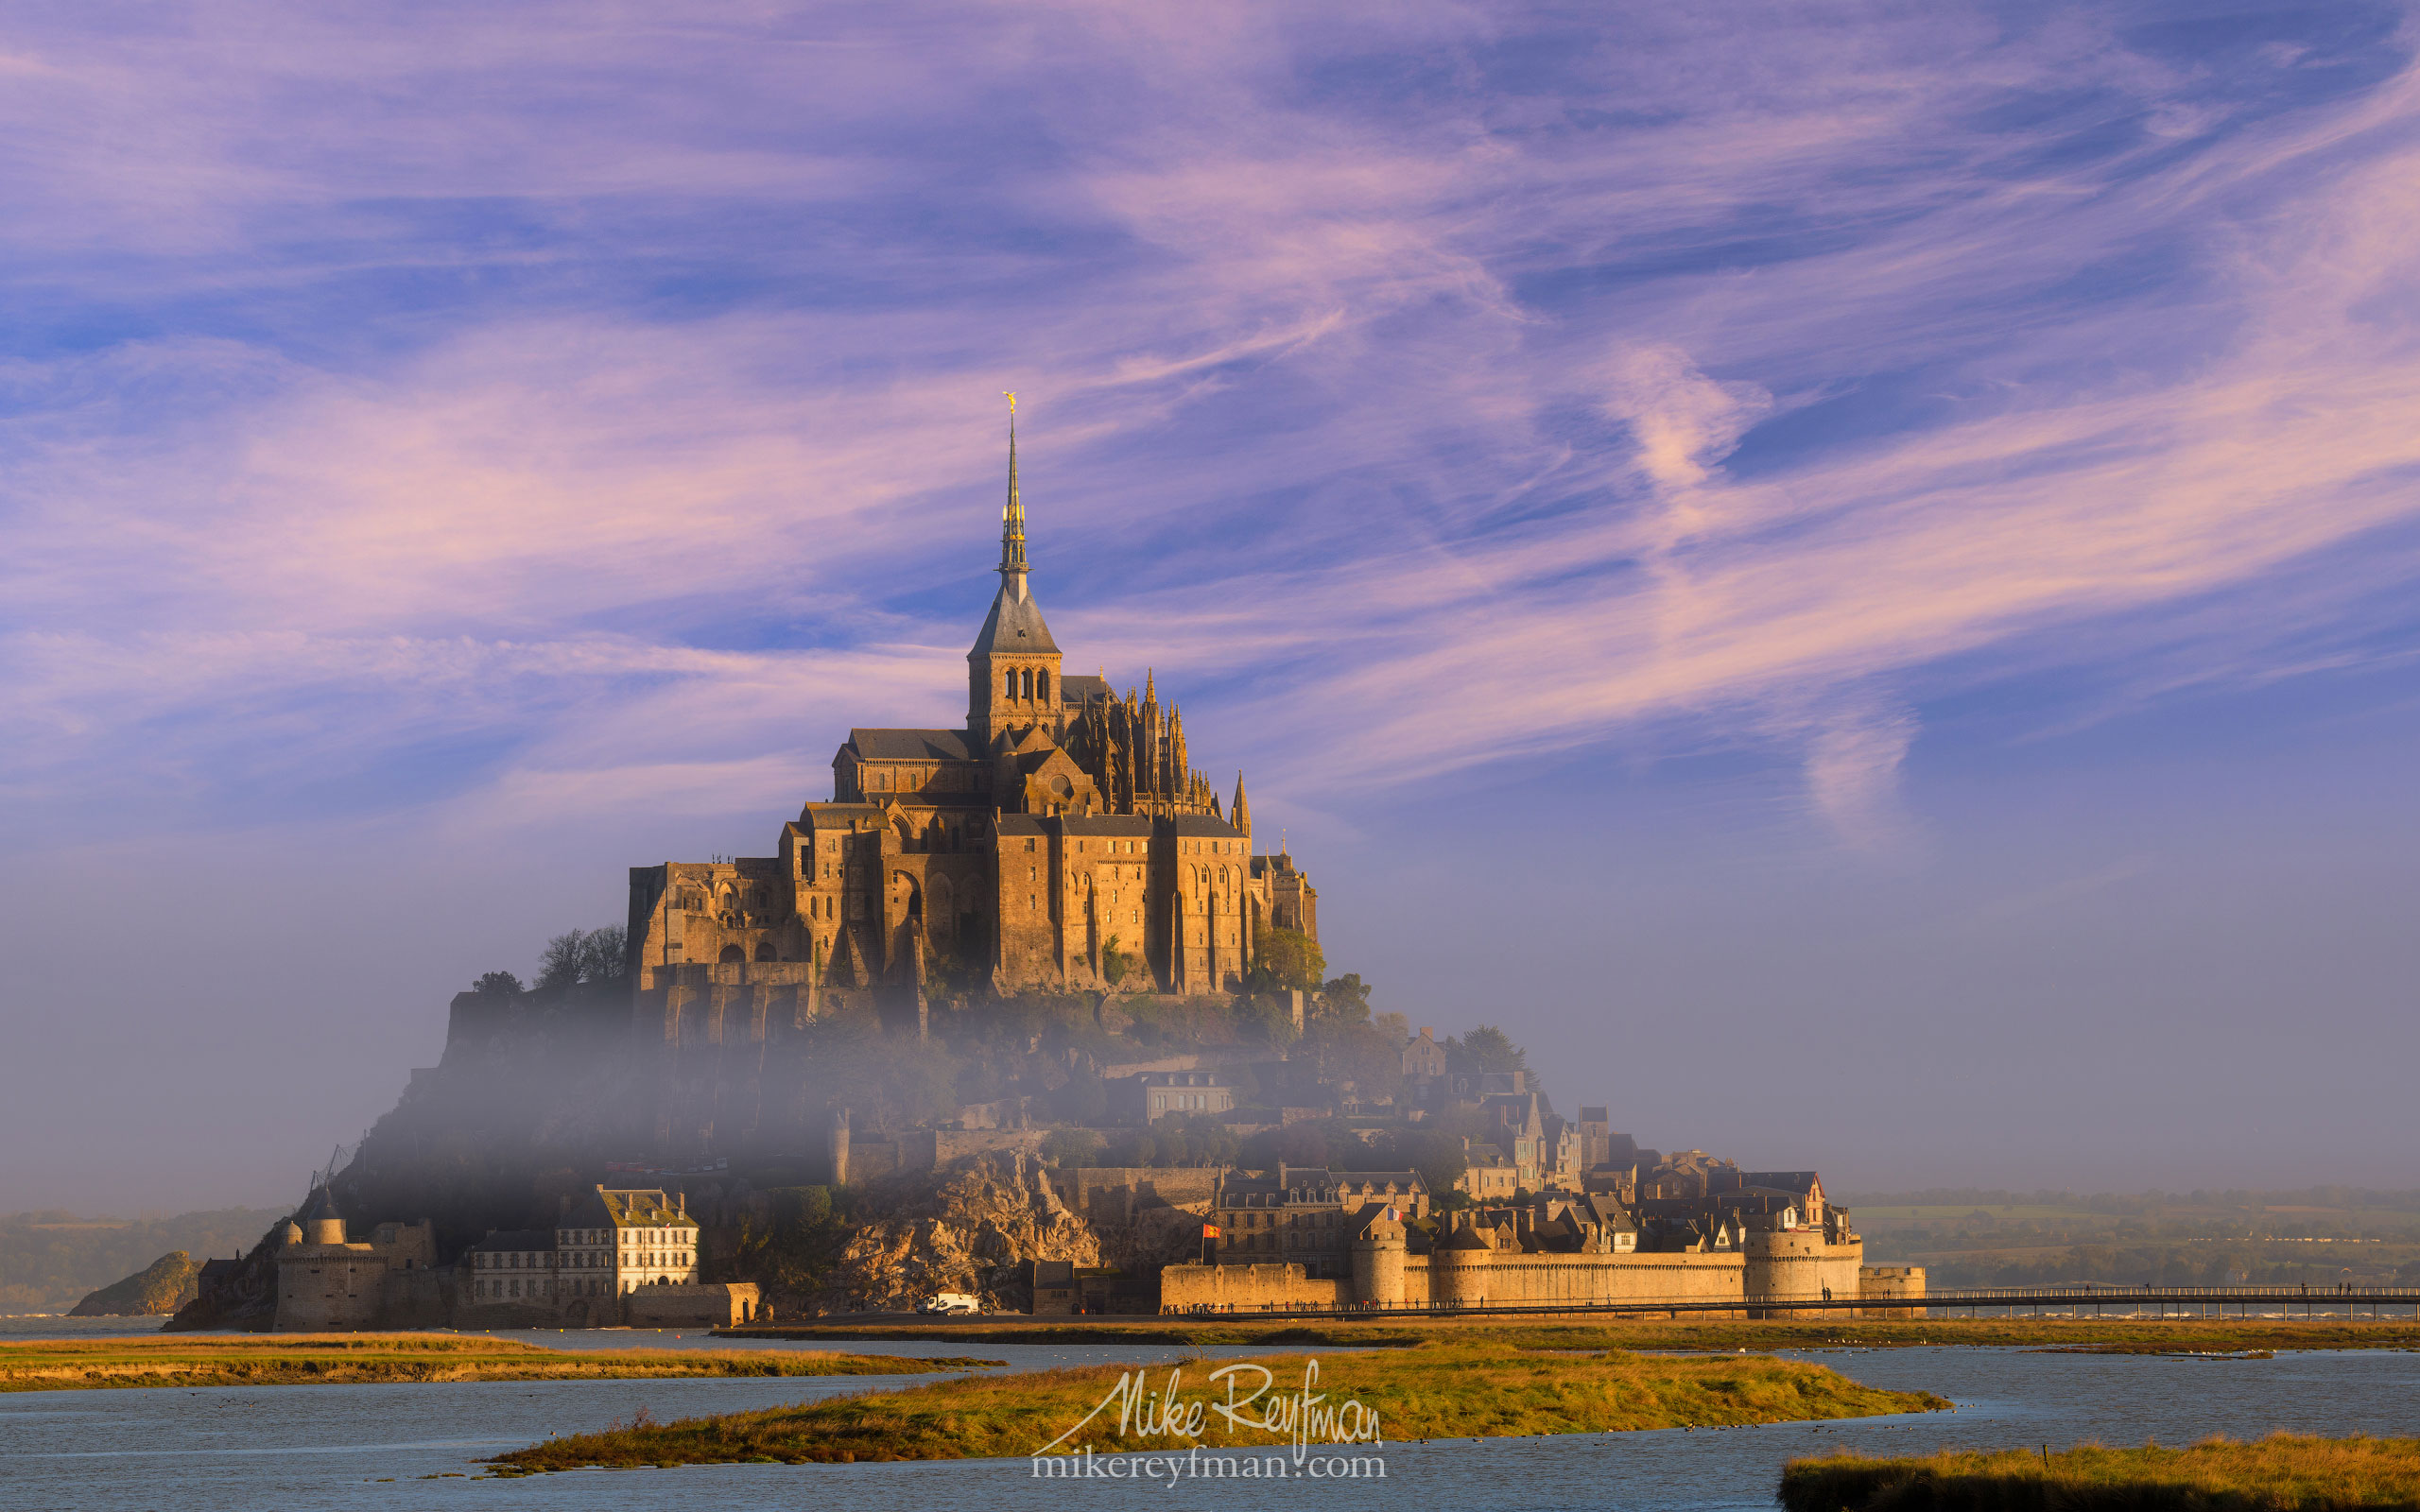 Le Mont-Saint-Michel Island and Benedictine Abbey. Normandy, France SM_MR50A1635 - Le Mont Saint Michel Island and Benedictine Abbey, Normandy, France - Mike Reyfman Photography